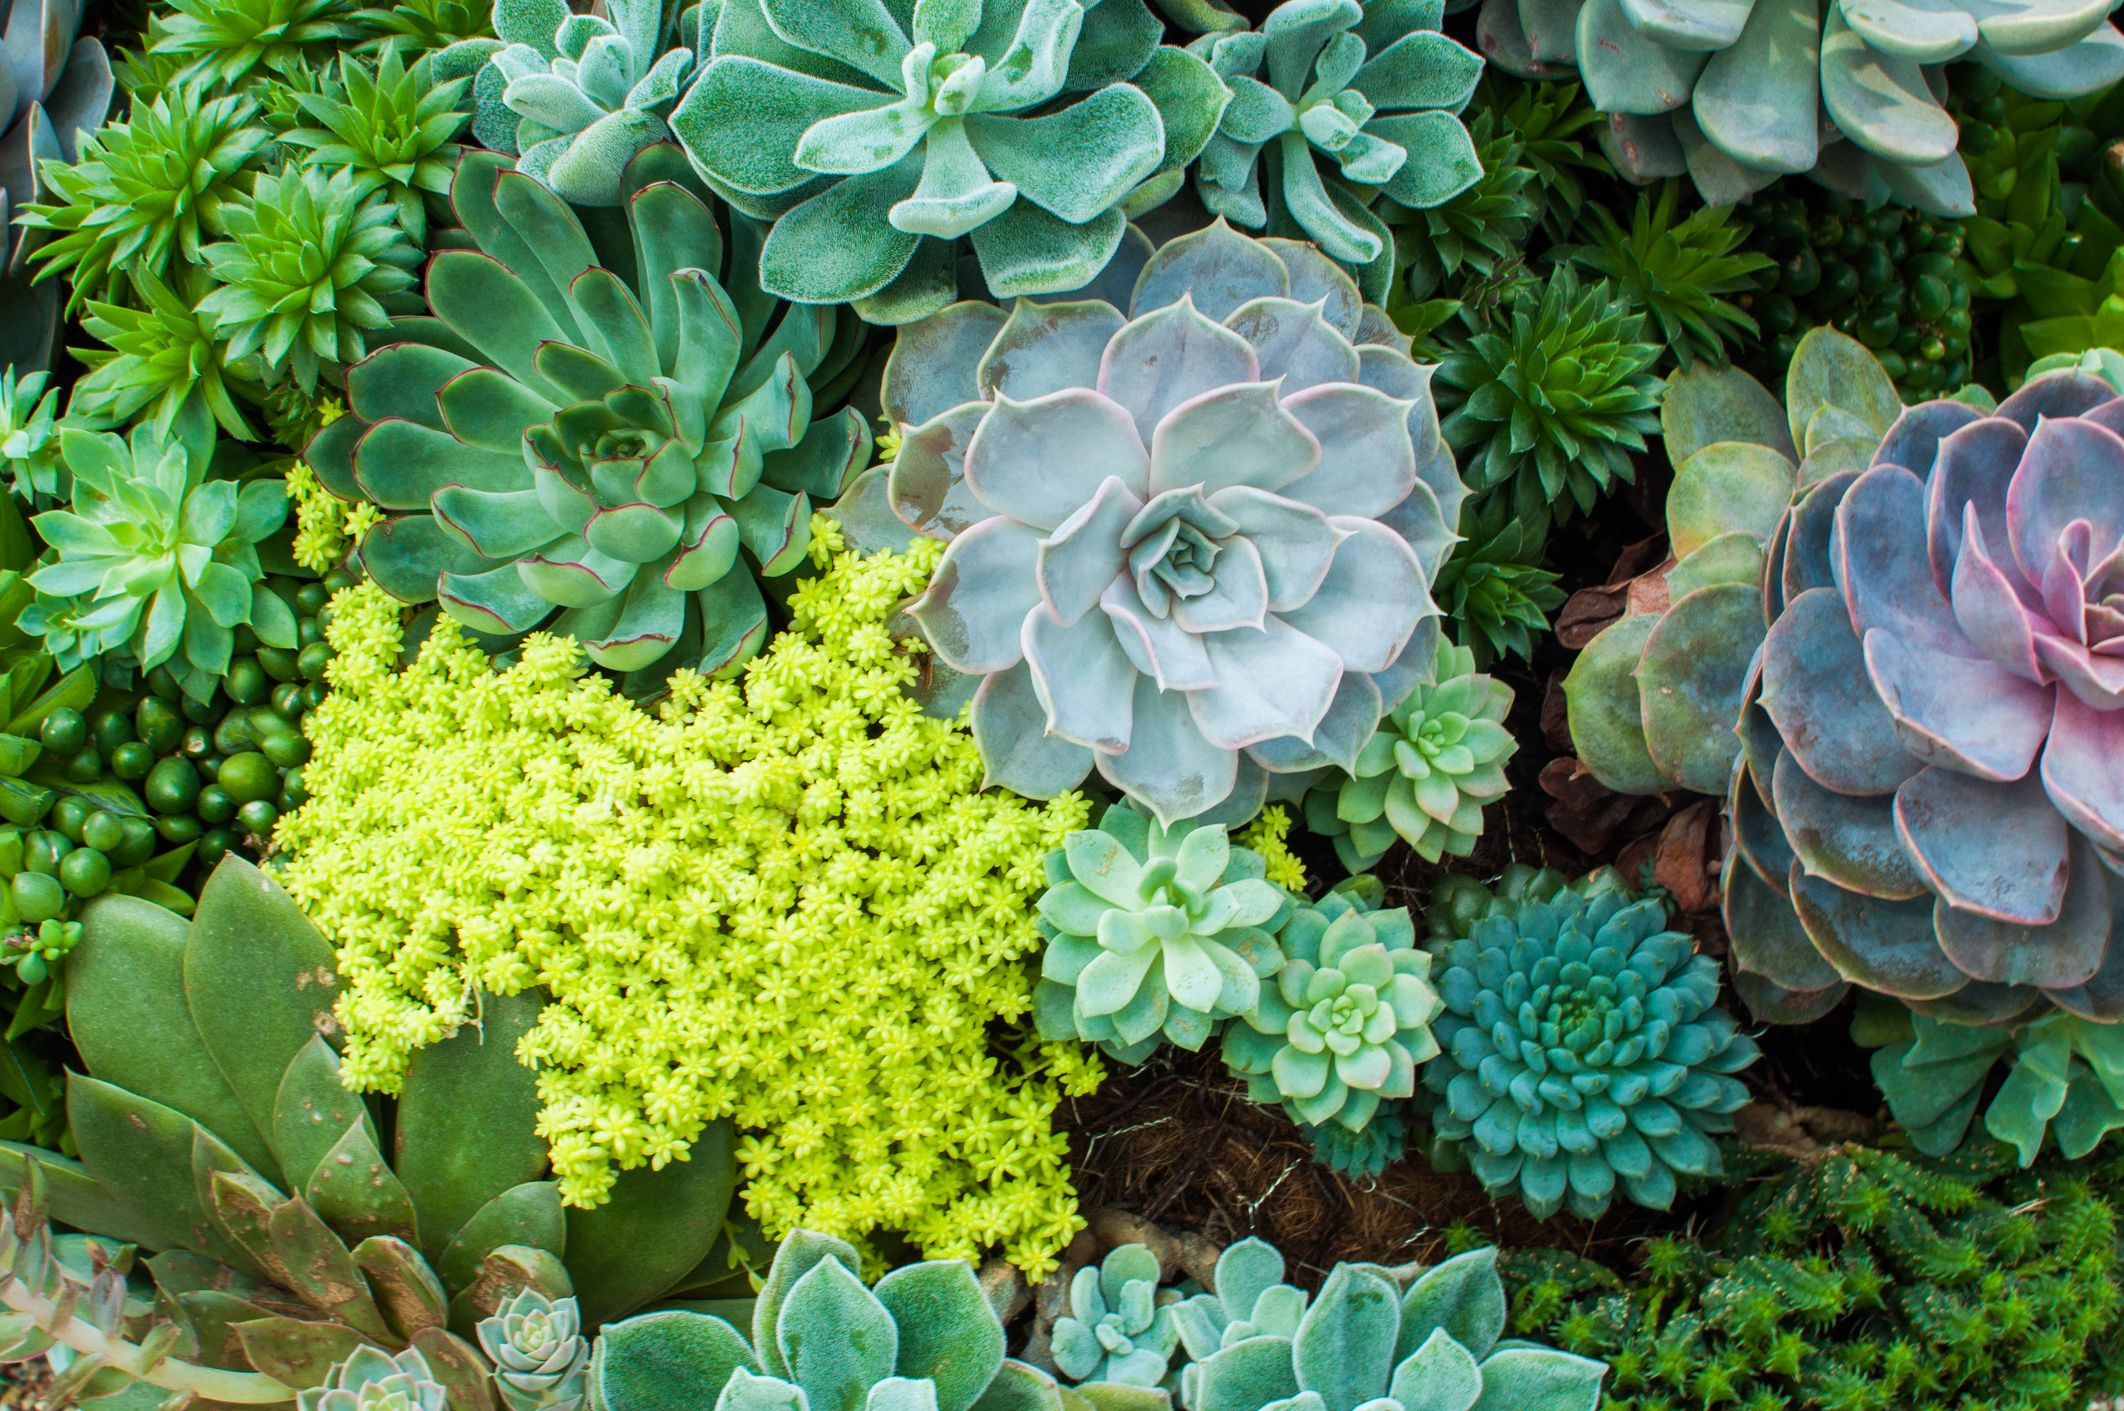 How To Care For Succulents Tips For Growing Succulents Indoors